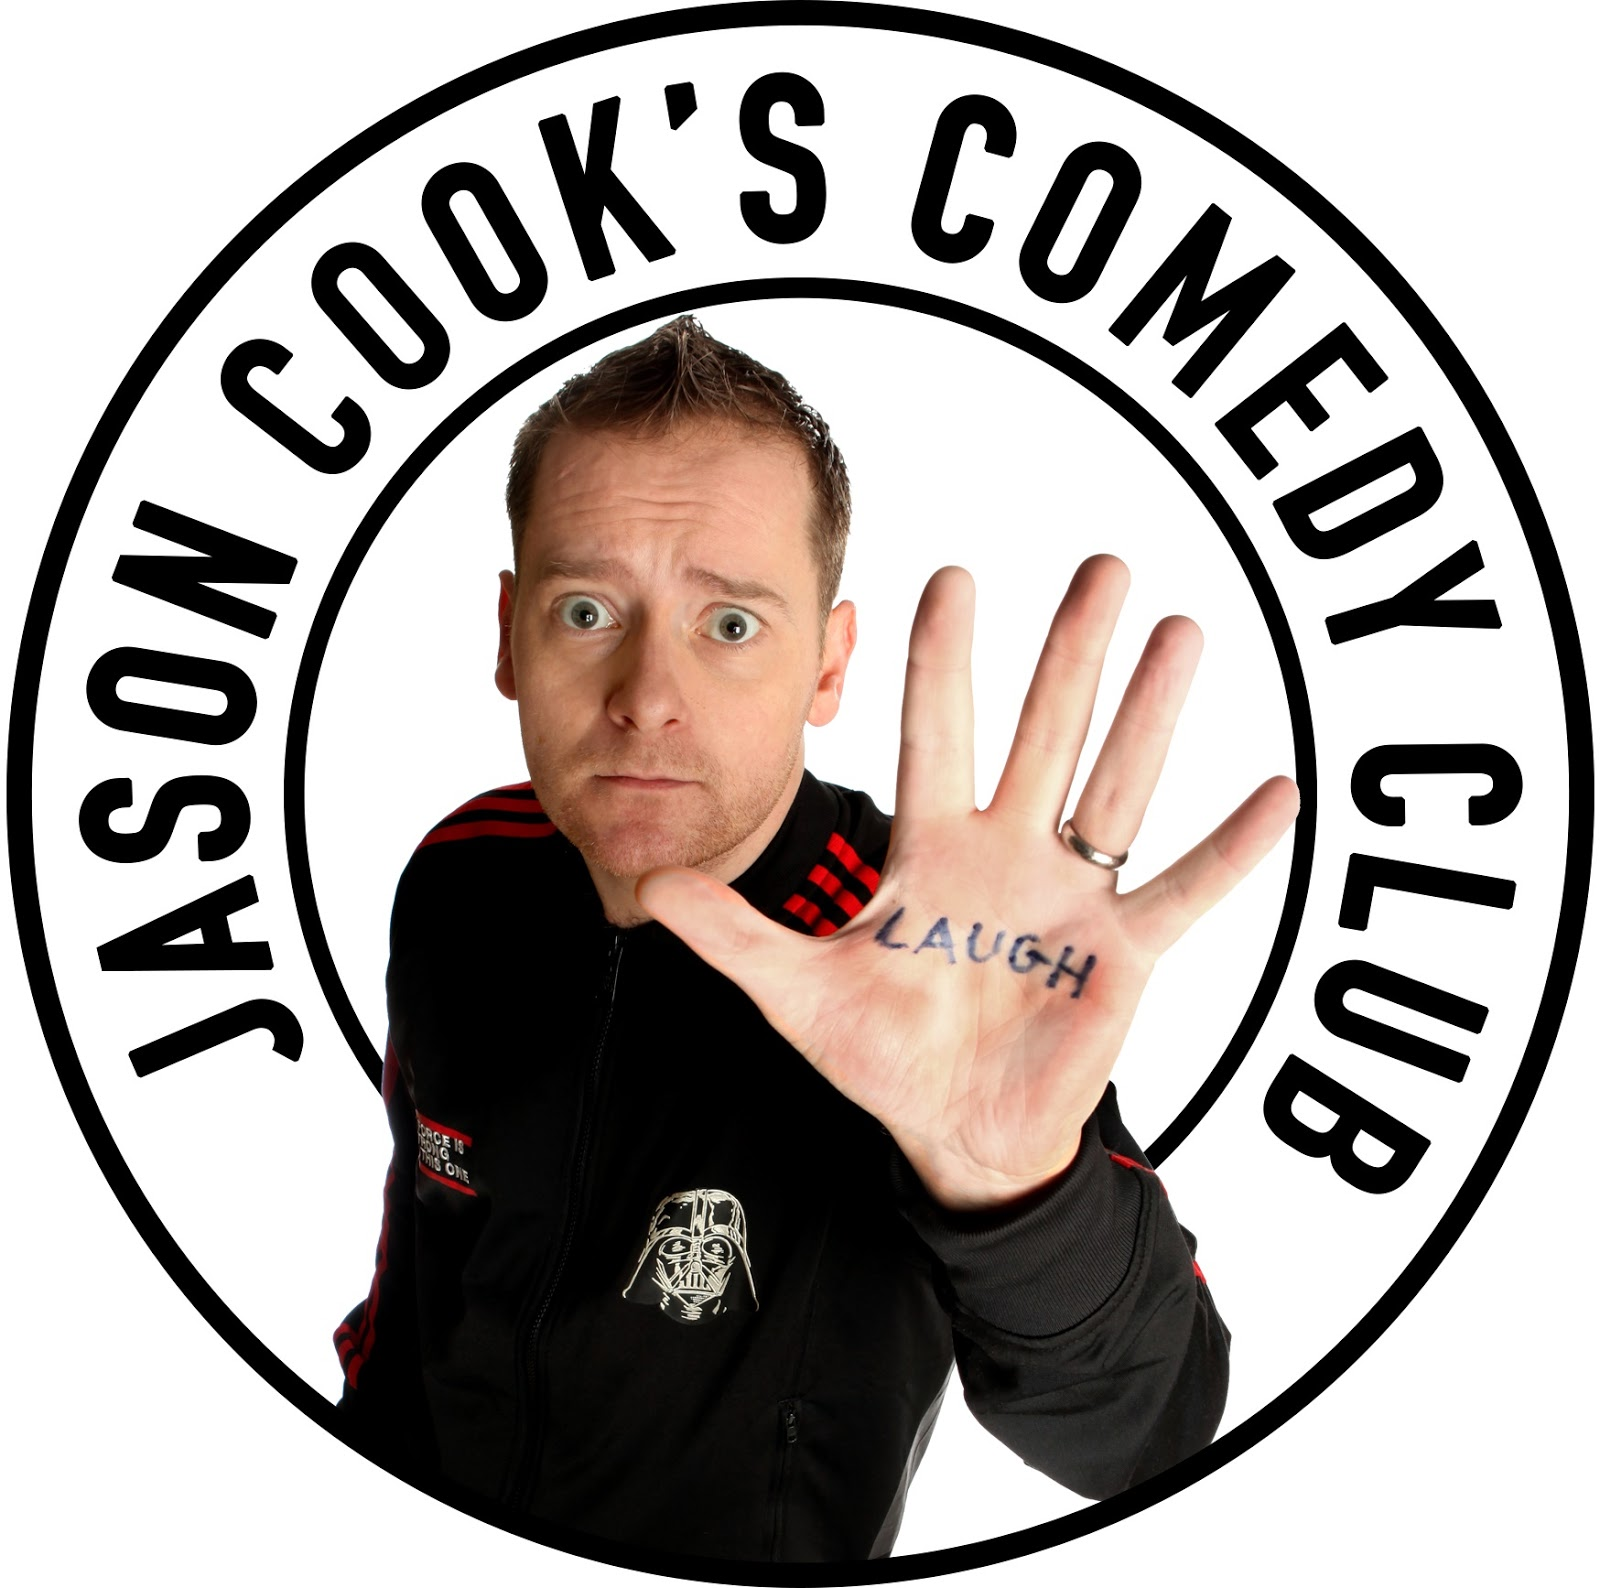 Jason Cooks Comedy Club at The Customs House in South Shields